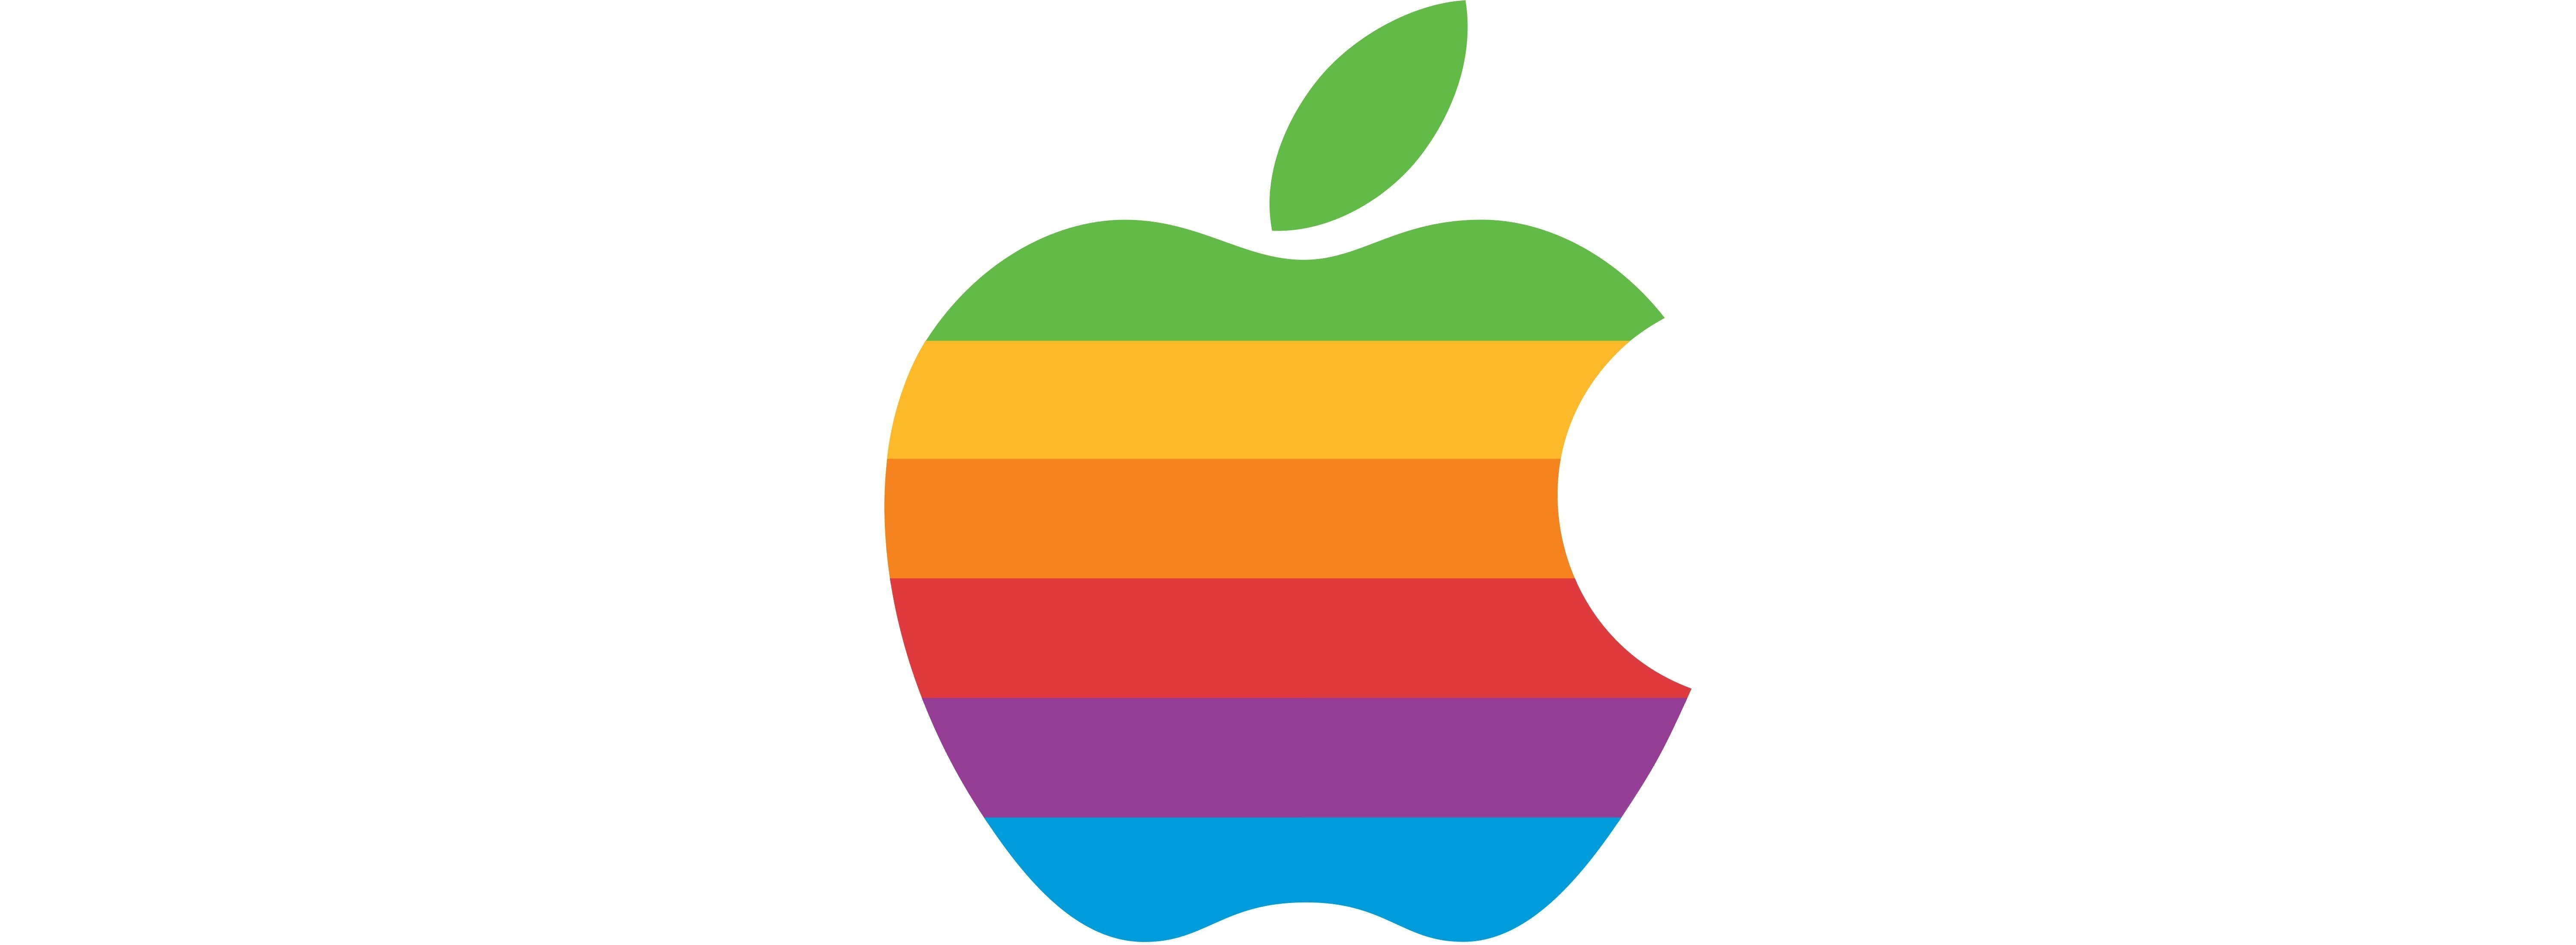 Apple products apple products png - Anniversaries Are A Good Time To Look A Back And Reflect On The Past I M A Relative Late Comer To Apple Products But At The Same Time Apple Has Been In